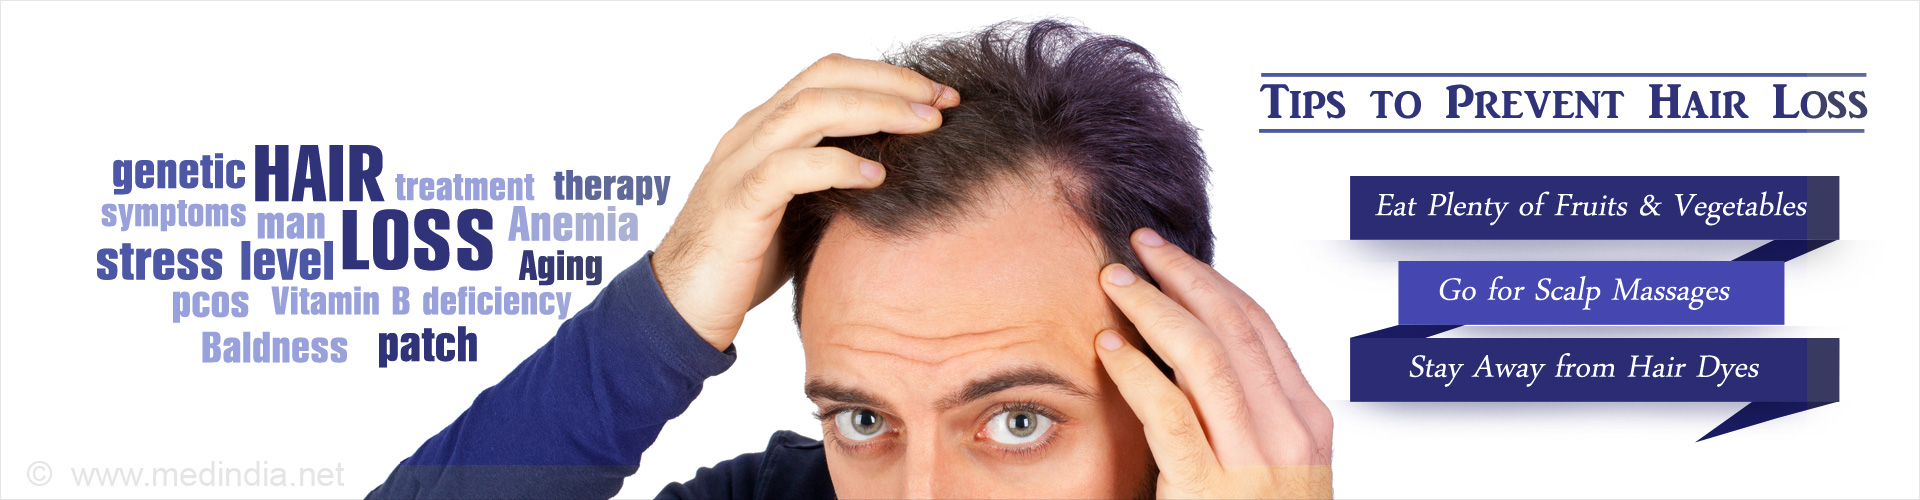 Top Tips for Hair Loss Prevention ⁄ How to Stop Hair Fall